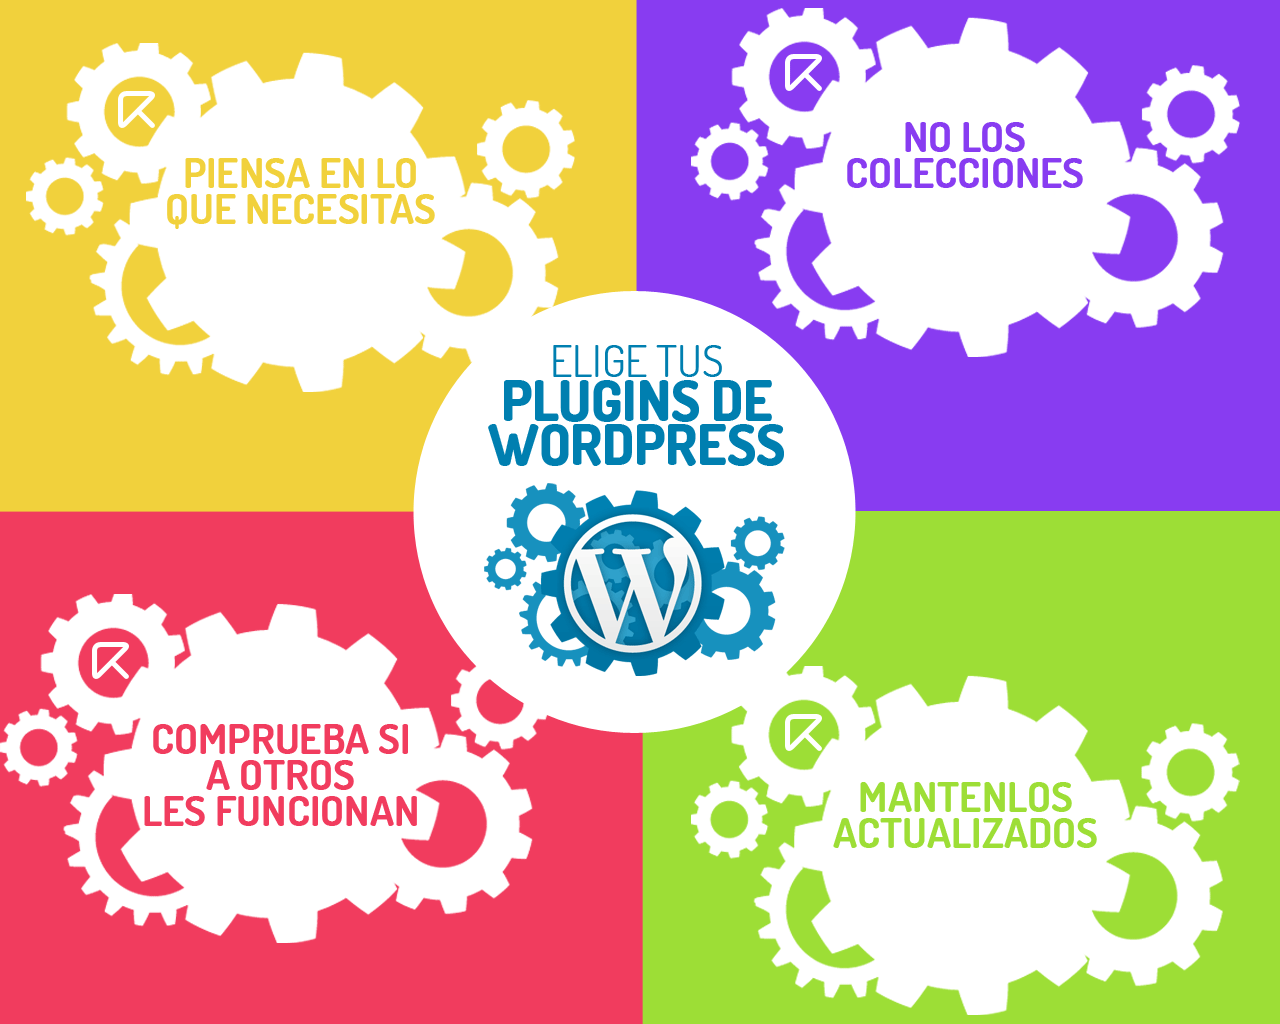 plugins de wordpress, como elegir